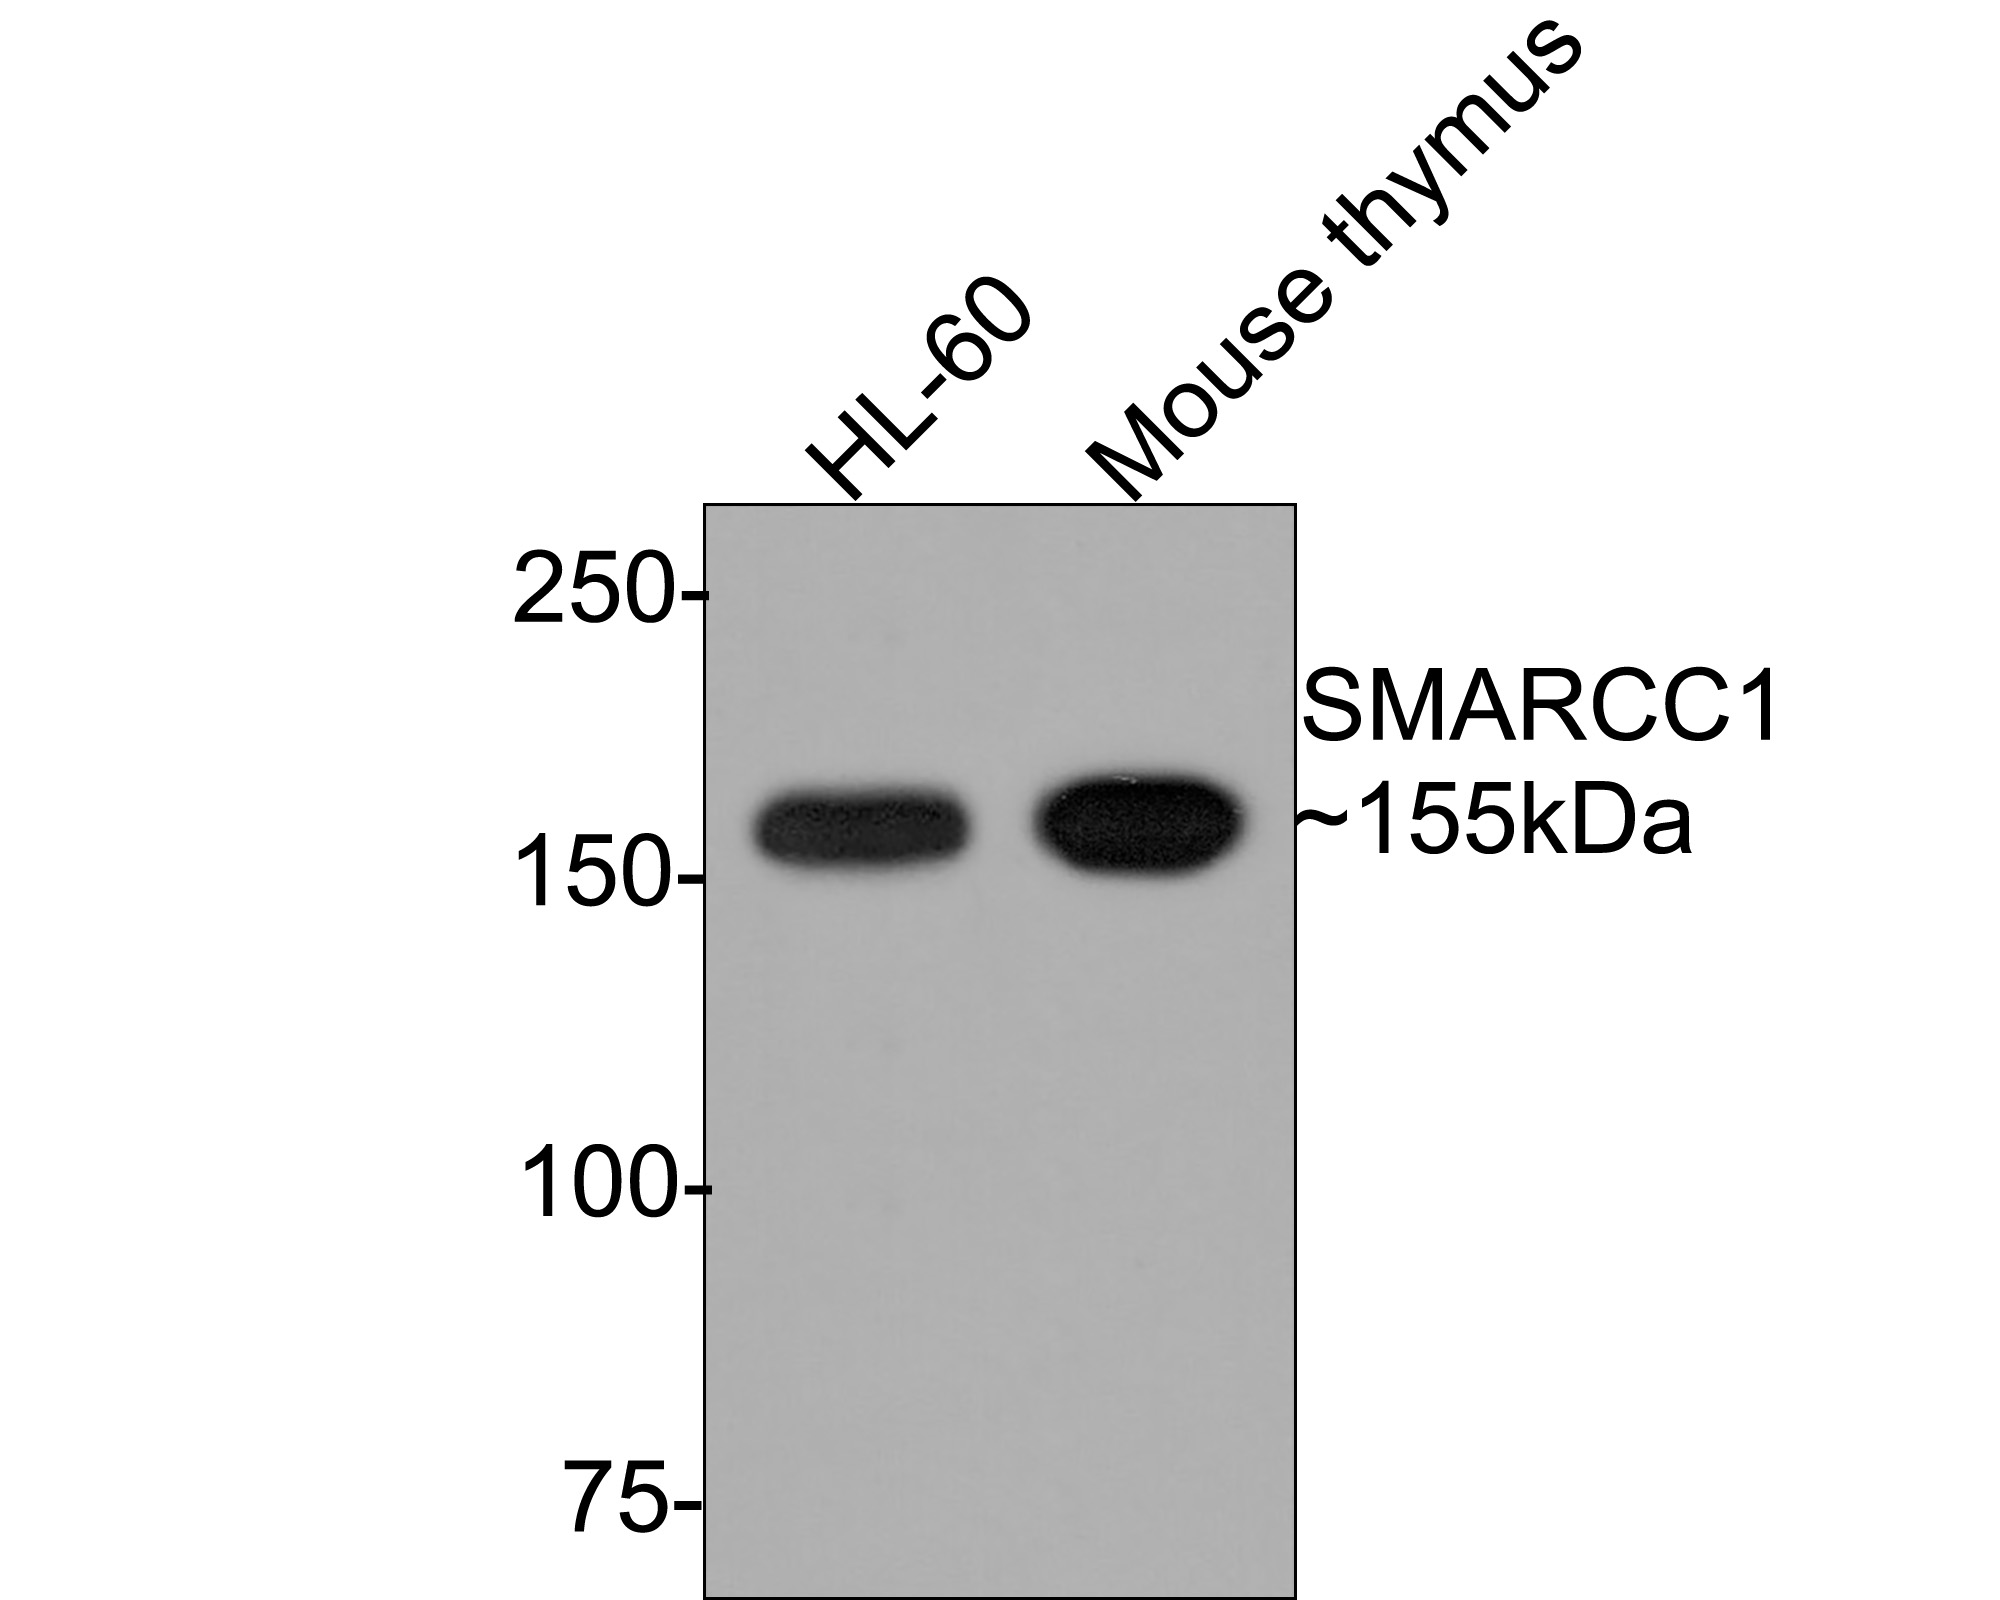 Western blot analysis of SMARCC1 on different cell lysates using anti-SMARCC1 at 1/500 dilution.<br />  Positive control:<br />  Line 1: Mouse thymus tissue <br />     Line 2: HL-60